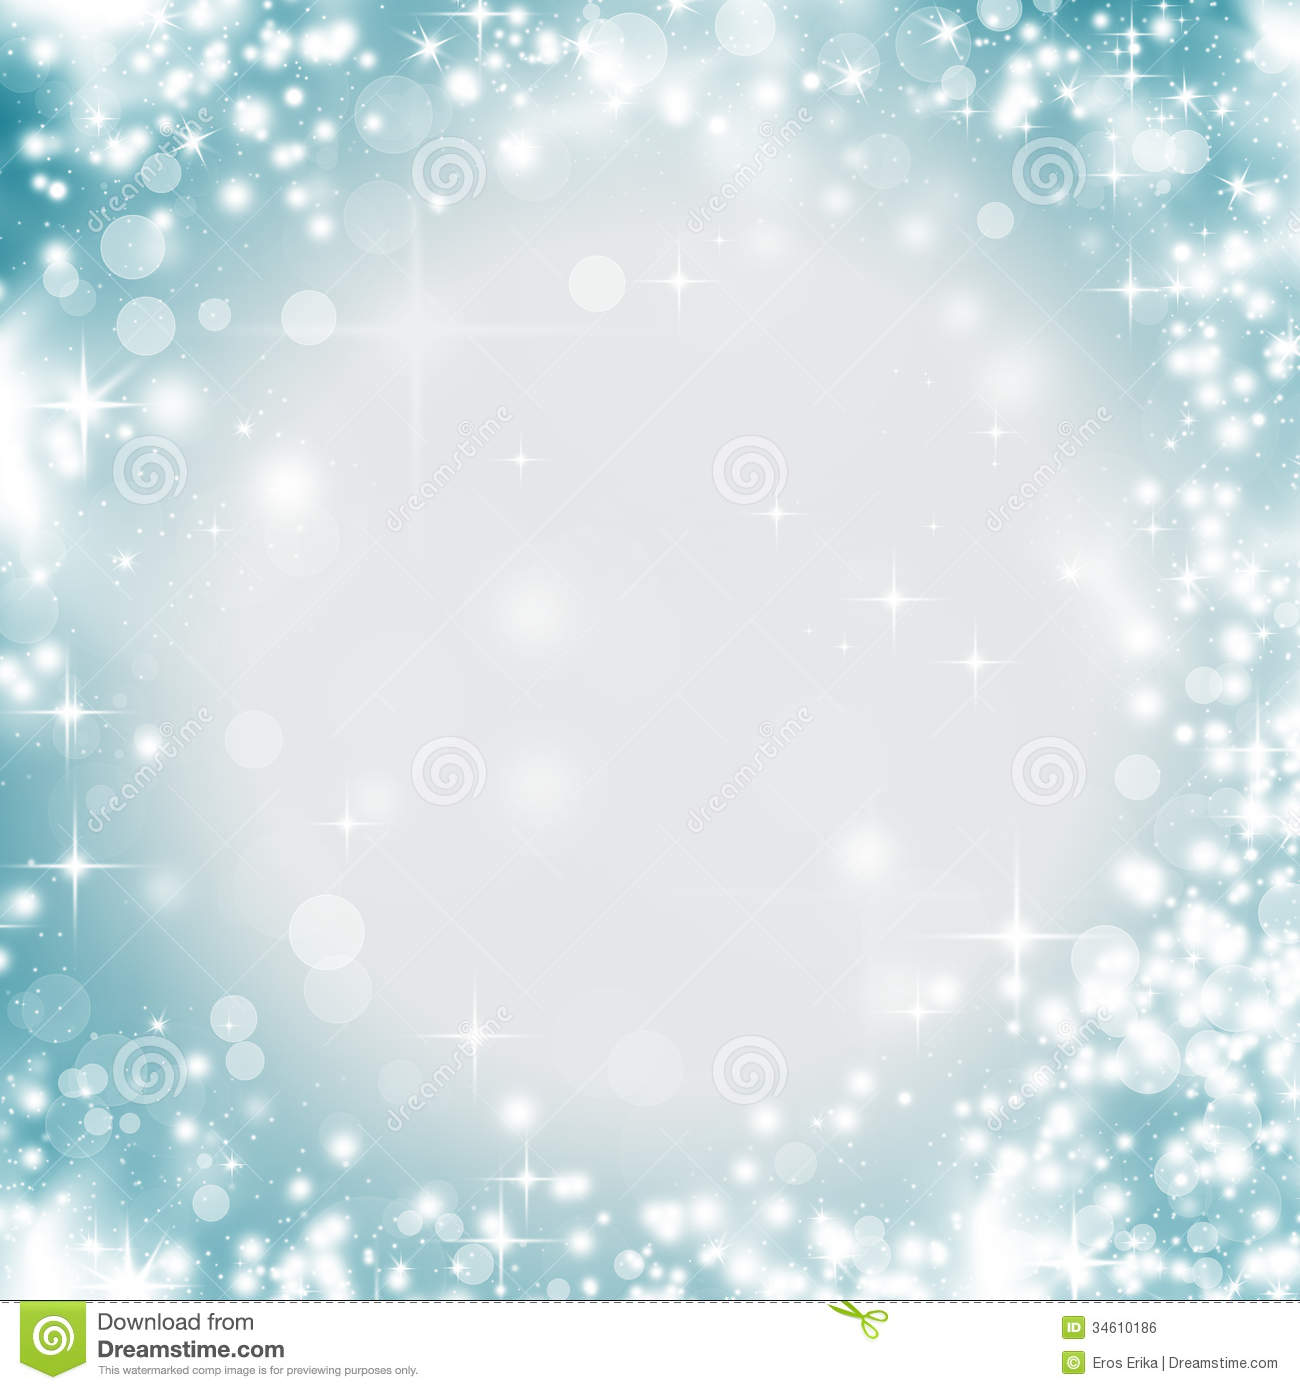 Falling From Stars Wallpaper Abstract Christmas Background Of Holiday Lights Royalty